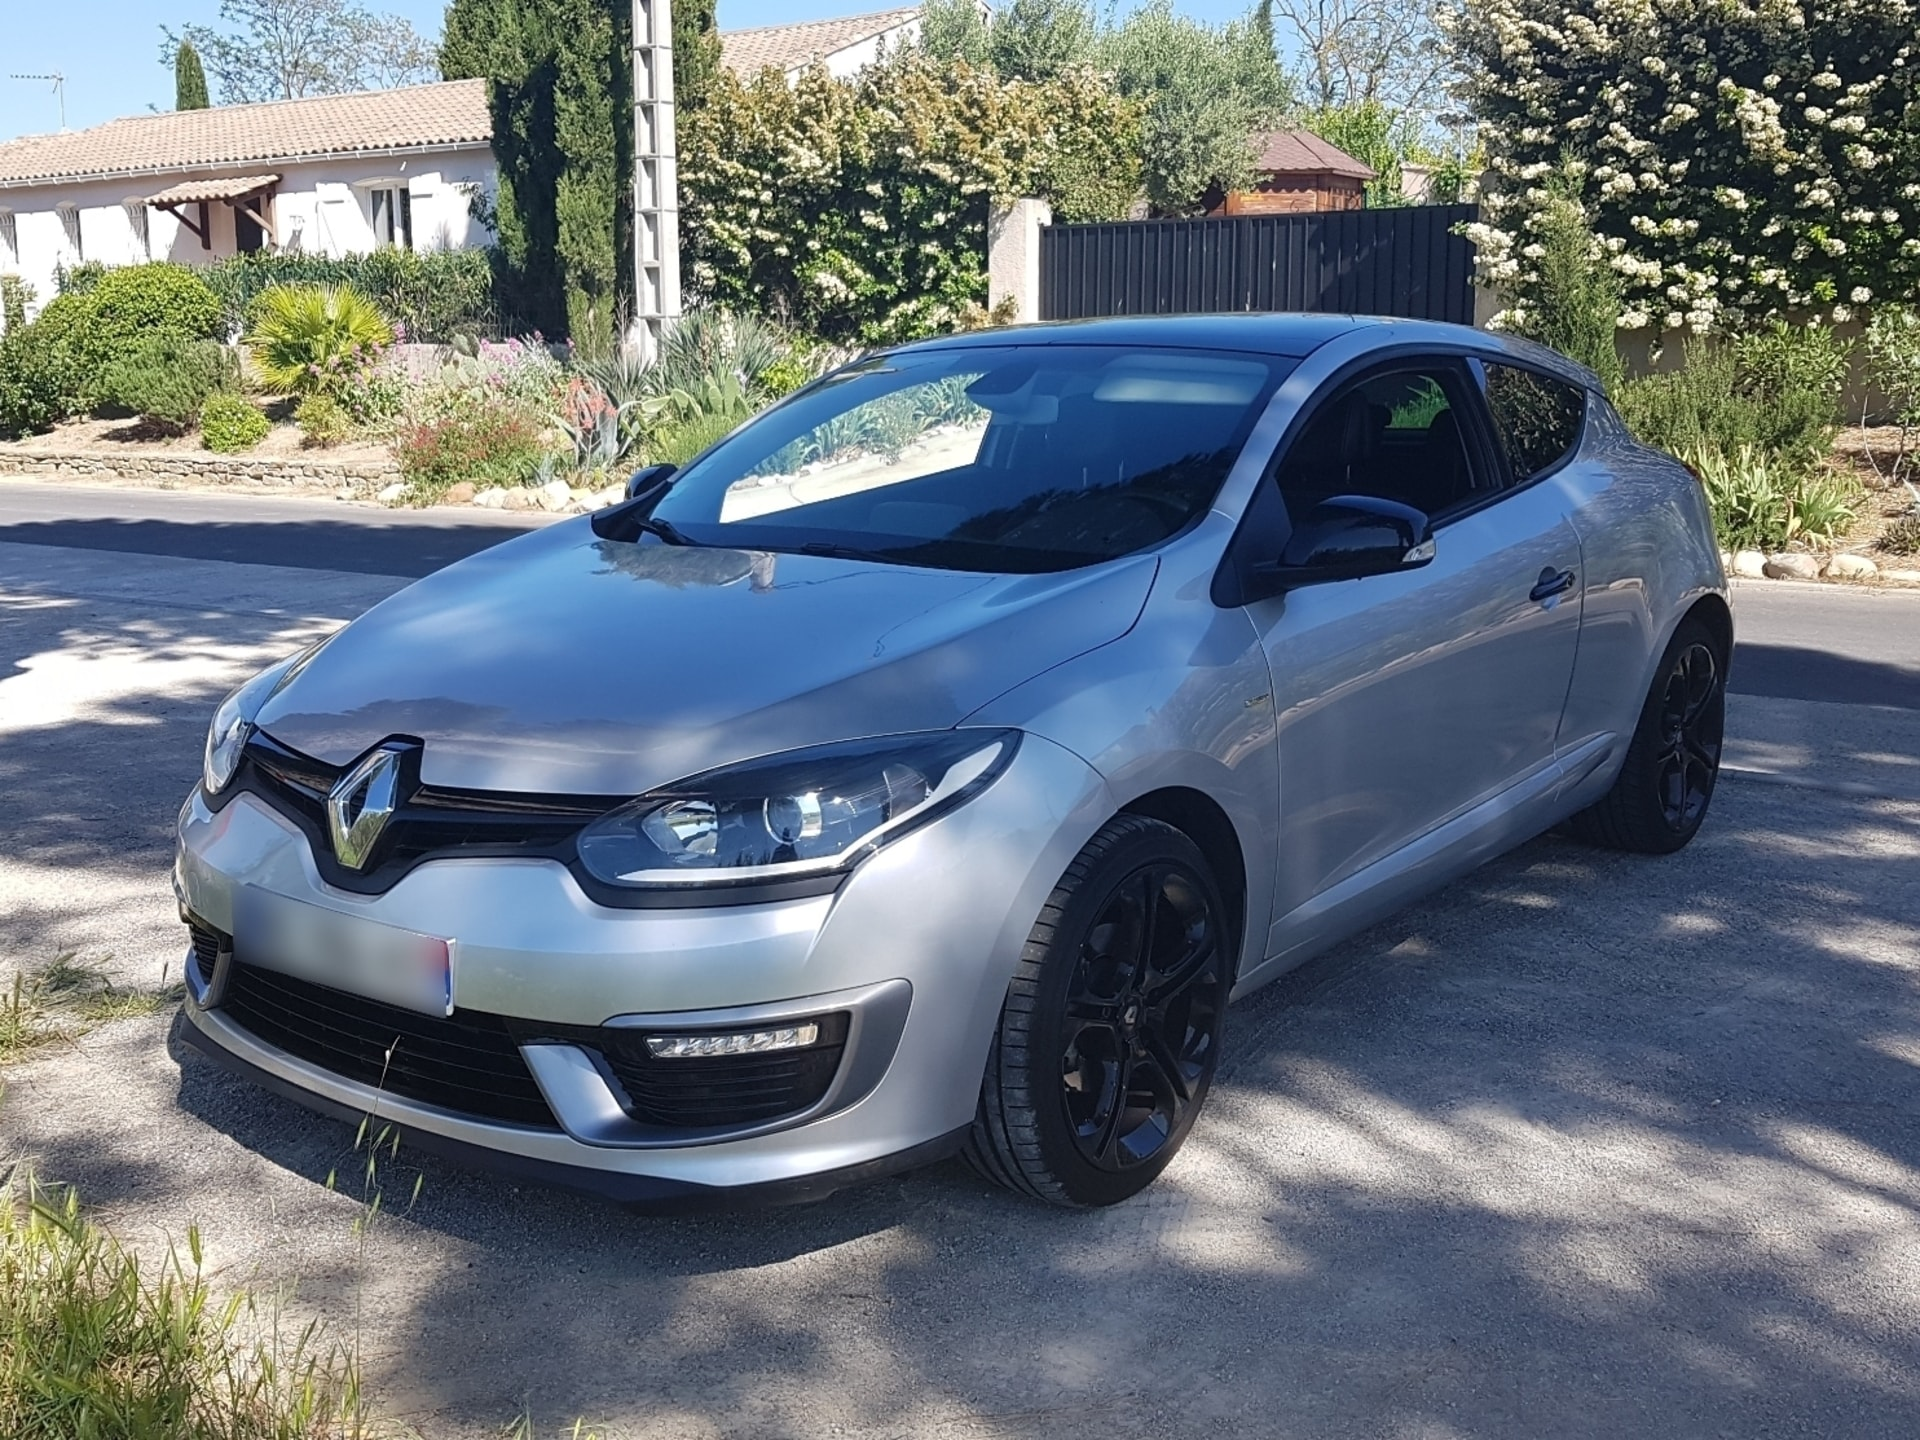 RENAULT MEGANE COUPE 1.2 TCE 130 ENERGY ULTIMATE - Carverntura